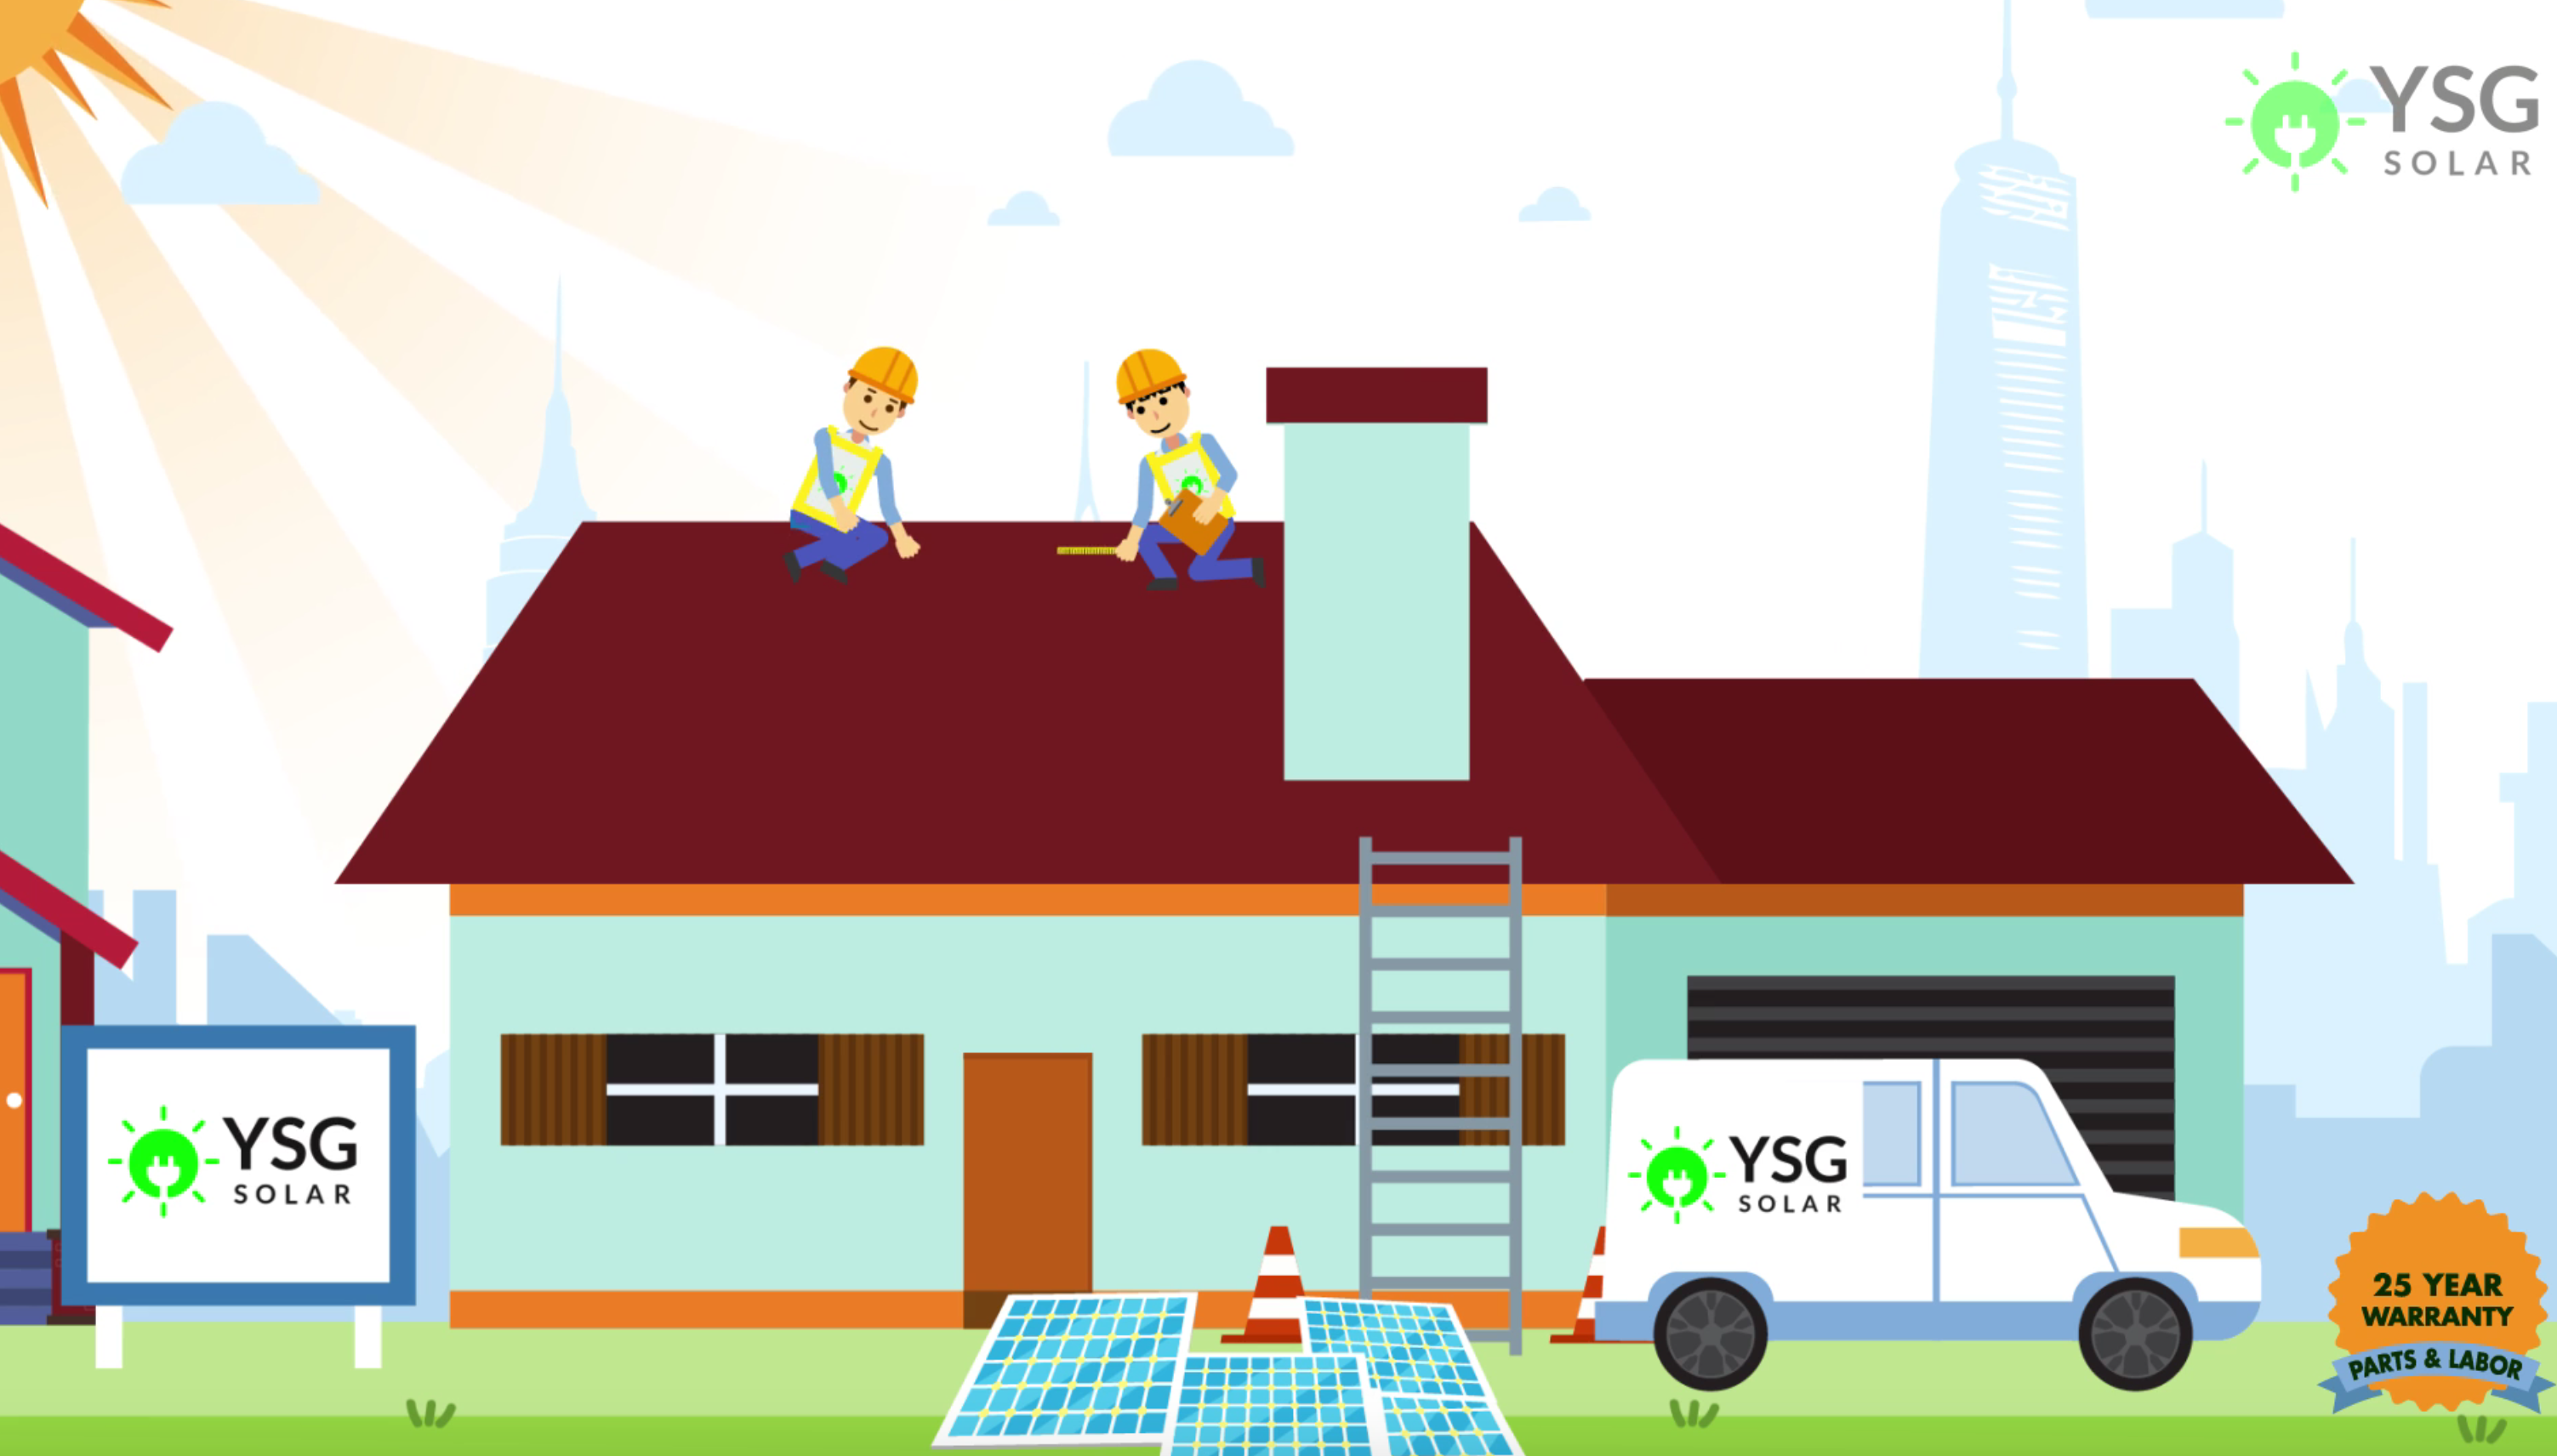 YSG Solar 25 year warranty